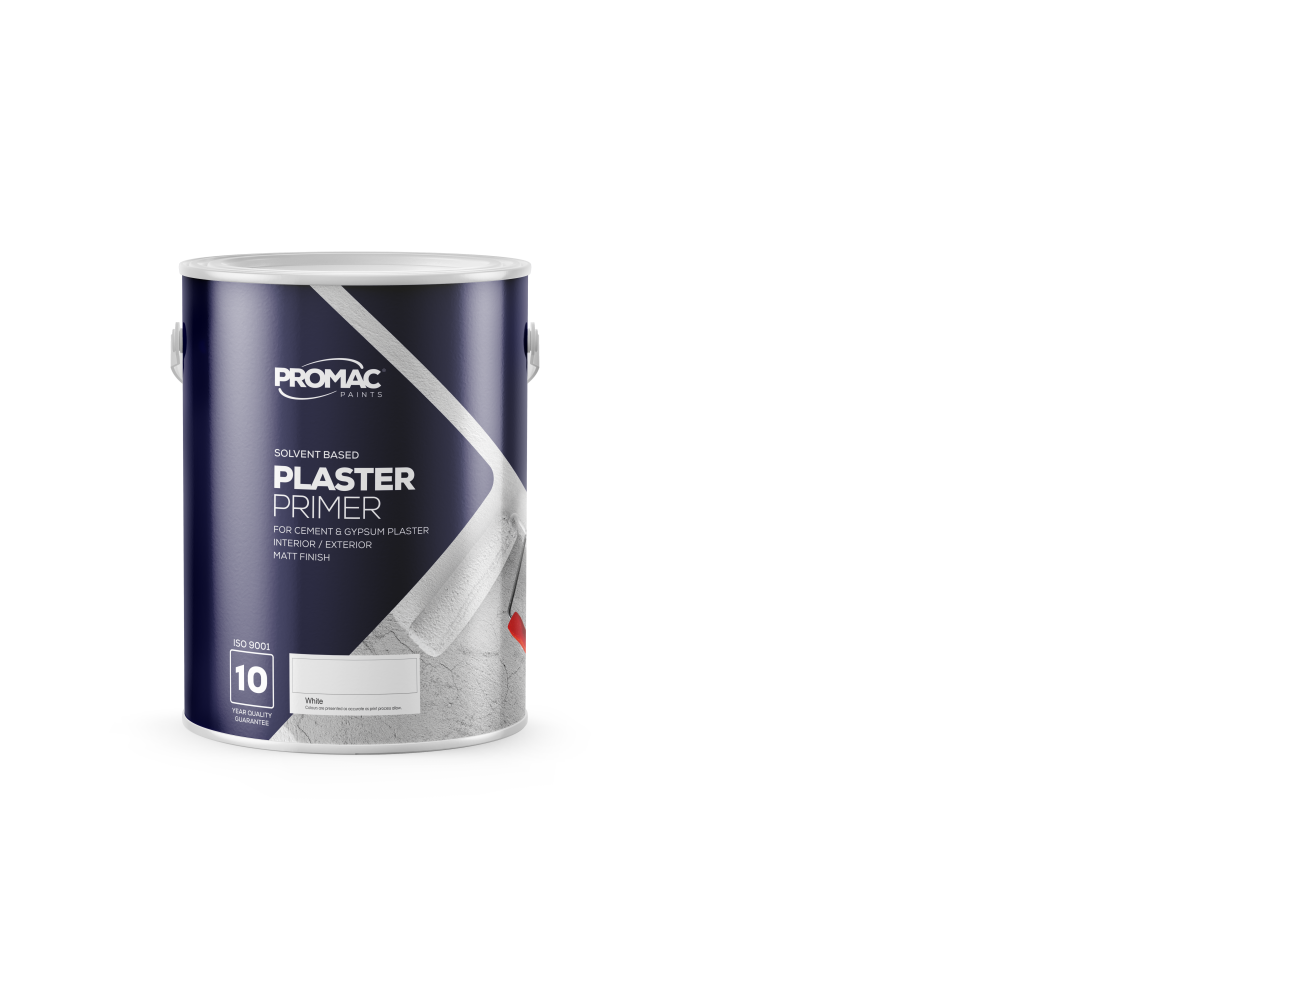 PLASTER PRIMER - SOLVENT BASEDPromac Plaster Primer is a new generation solvent based, alkali resistant plaster primer which has excellent adhesion, binding power and water / weather resistance for interior / exterior areas. It is meant for application to both uncoated new work and weathered / previously painted areas.